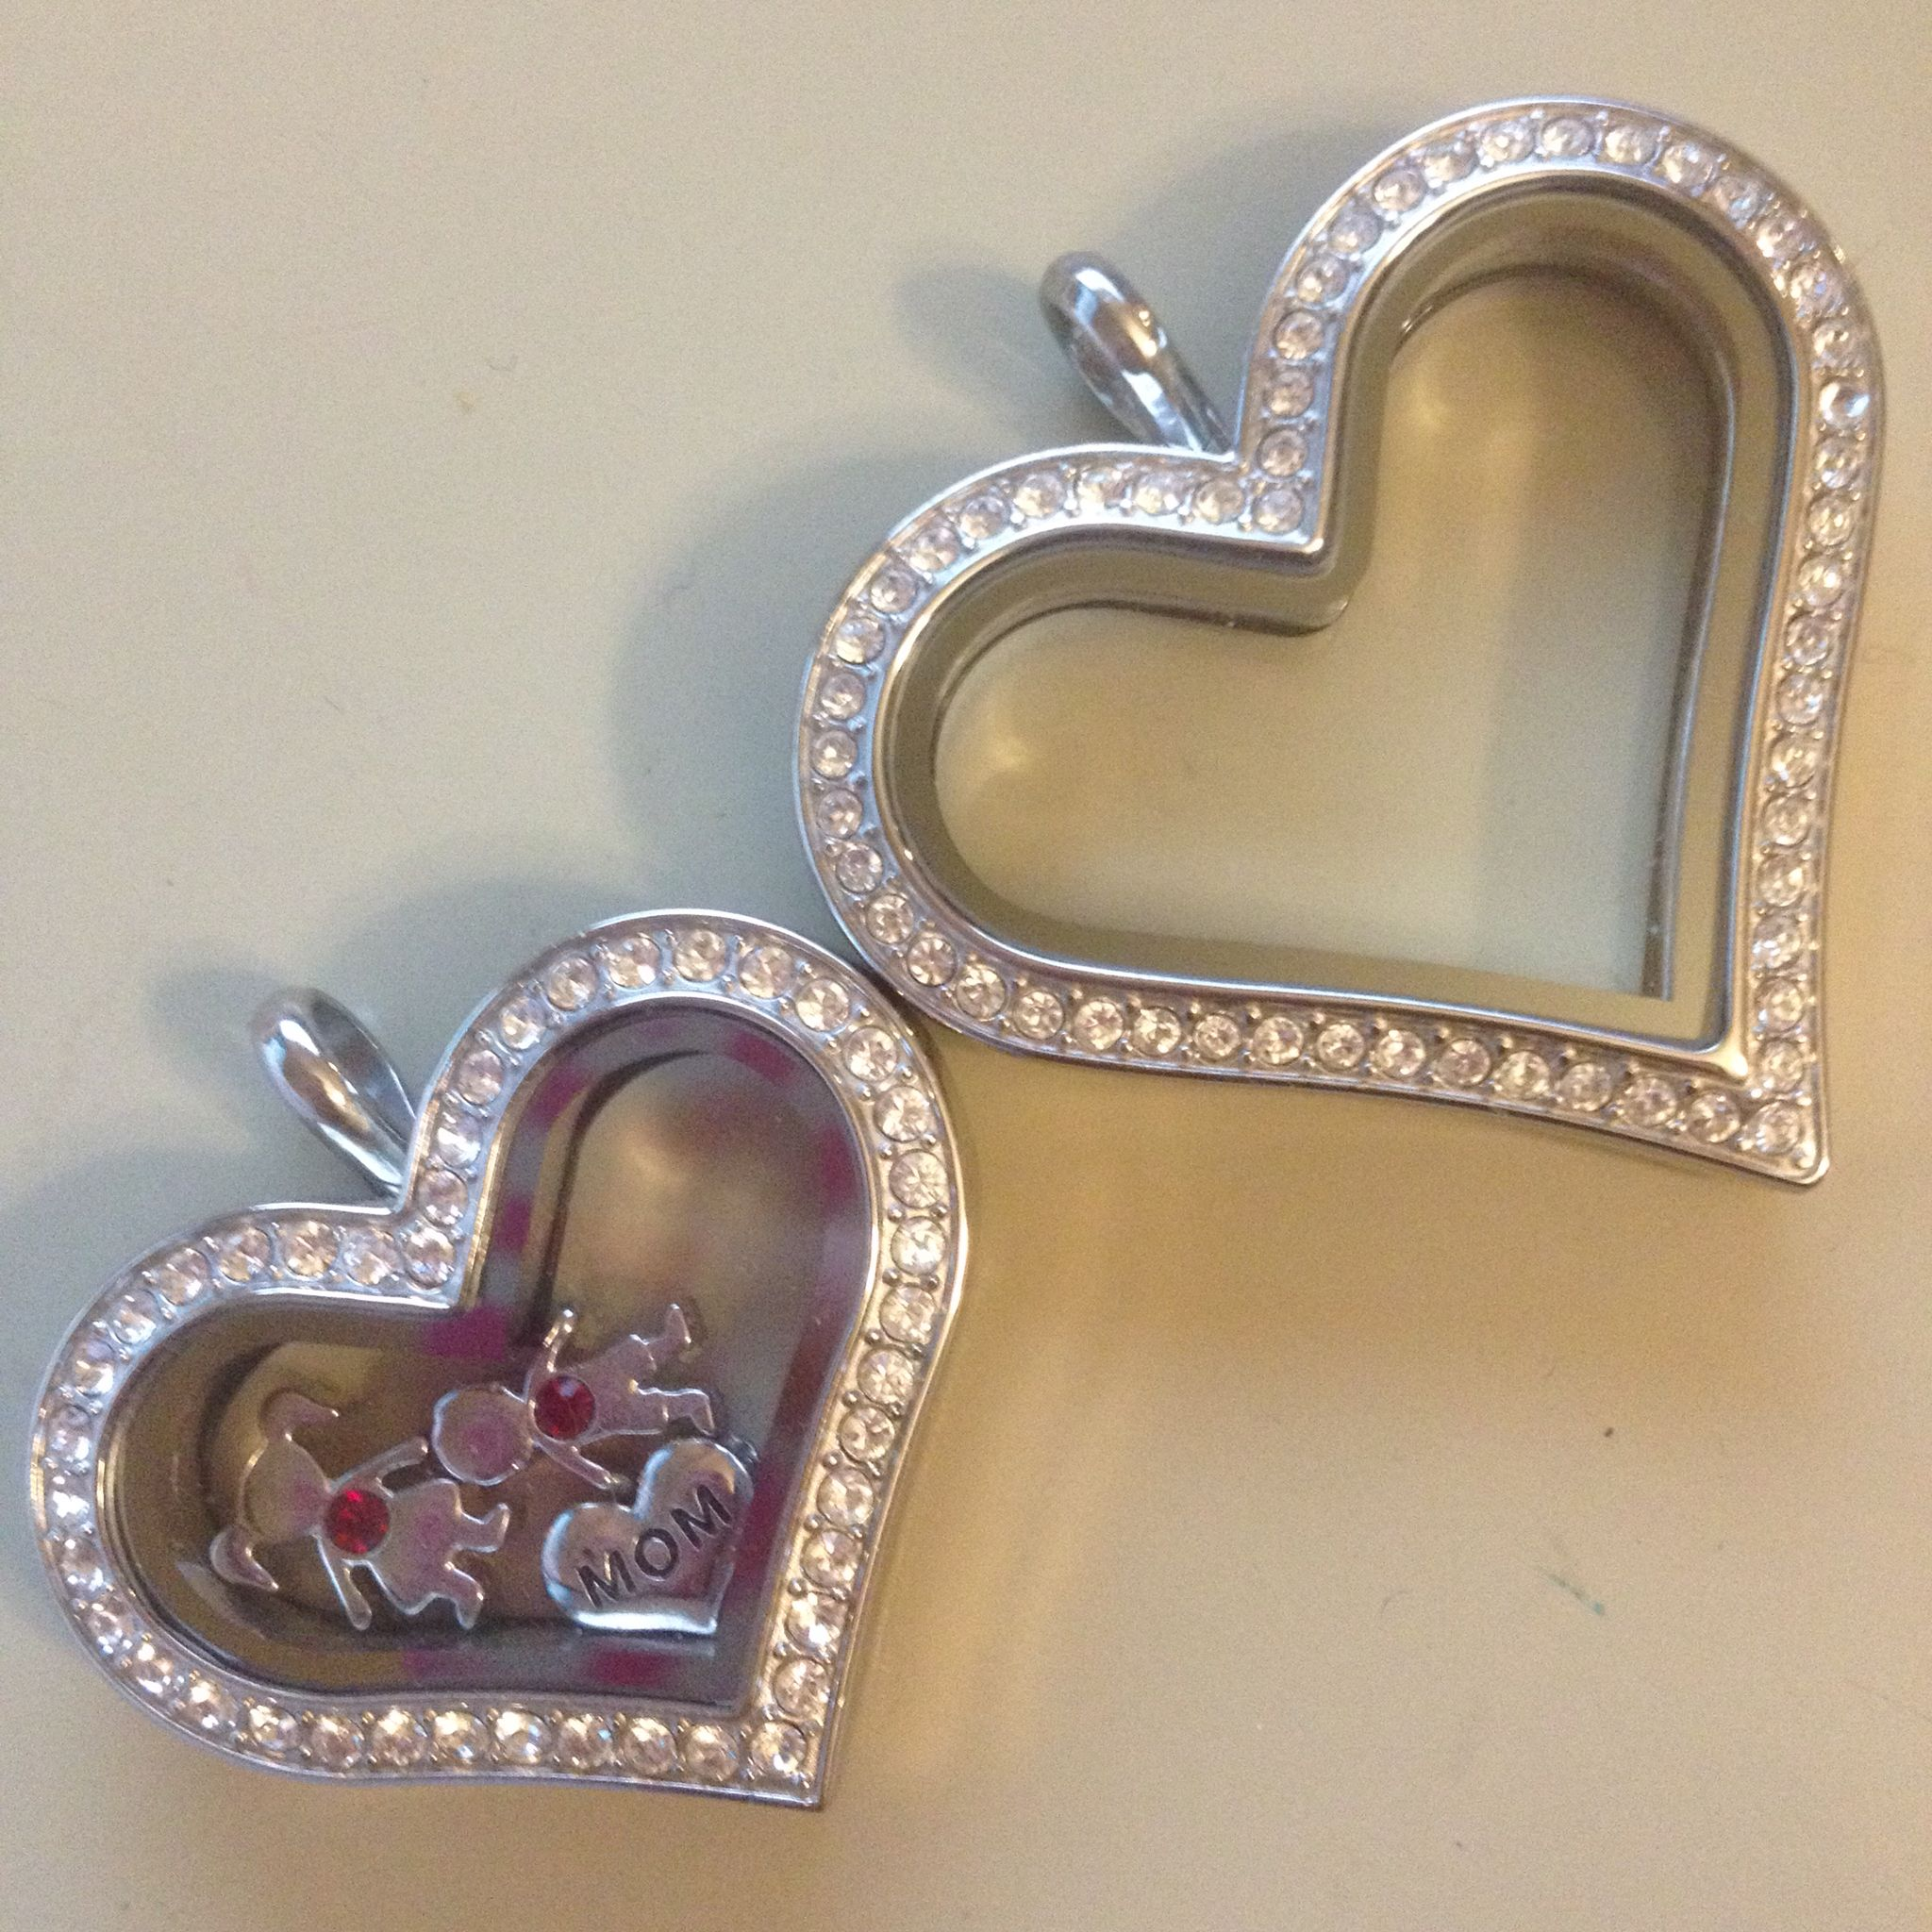 The 2 heart lockets from origami owl for size comparison - and to give an idea on how many kids fit inside. Kids with birthstone charms are no longer available. Kids charms no longer have birthstones in them.